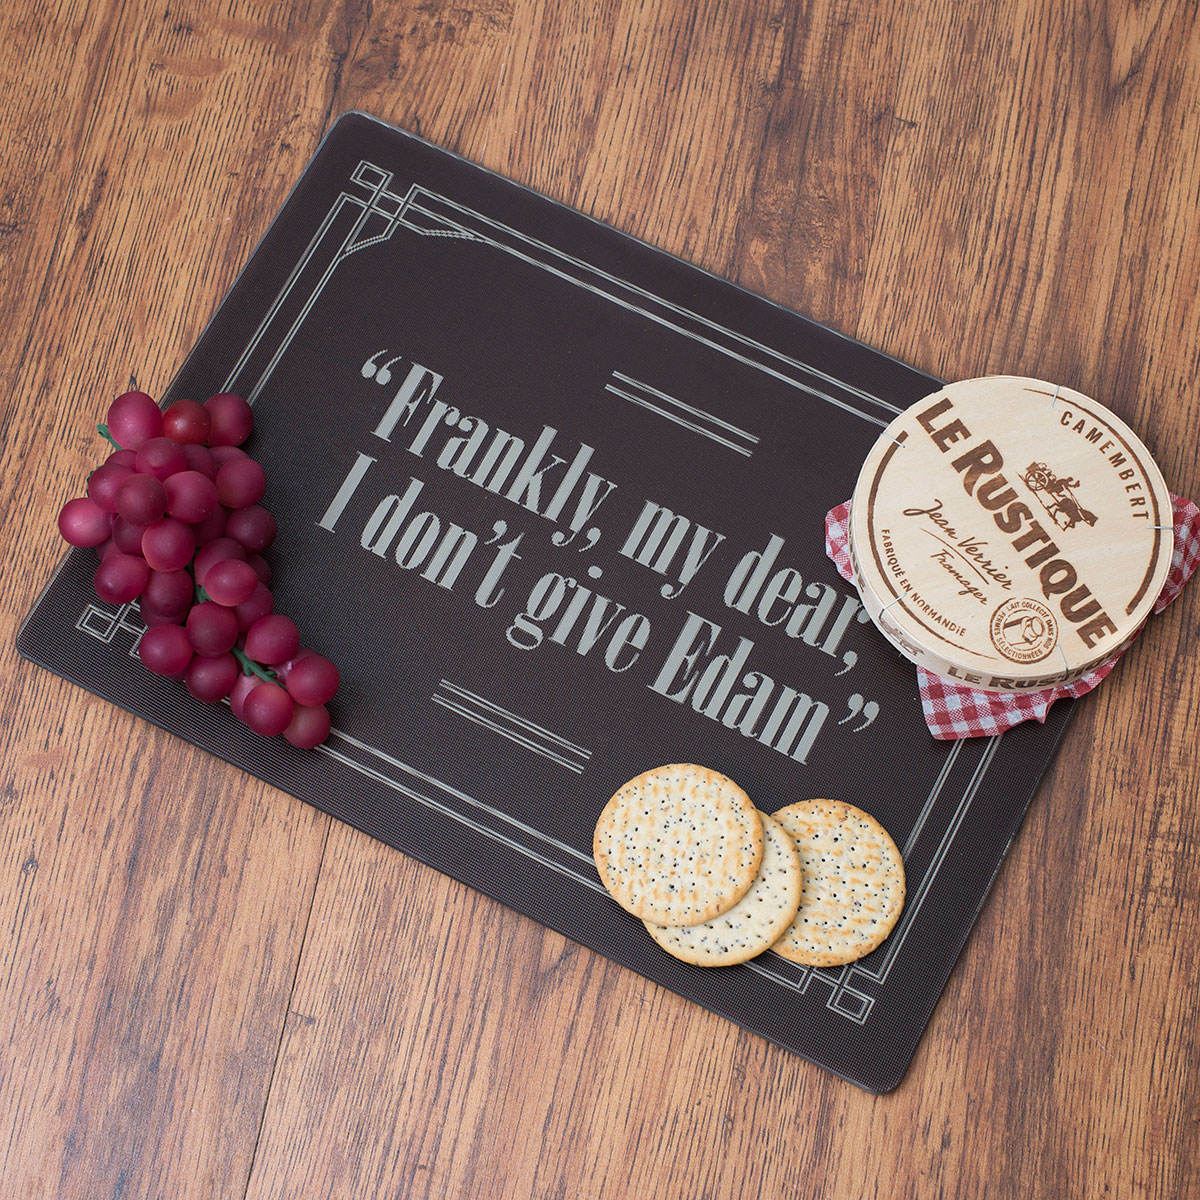 Frankly my dear, I don't give Edam Cheeseboard